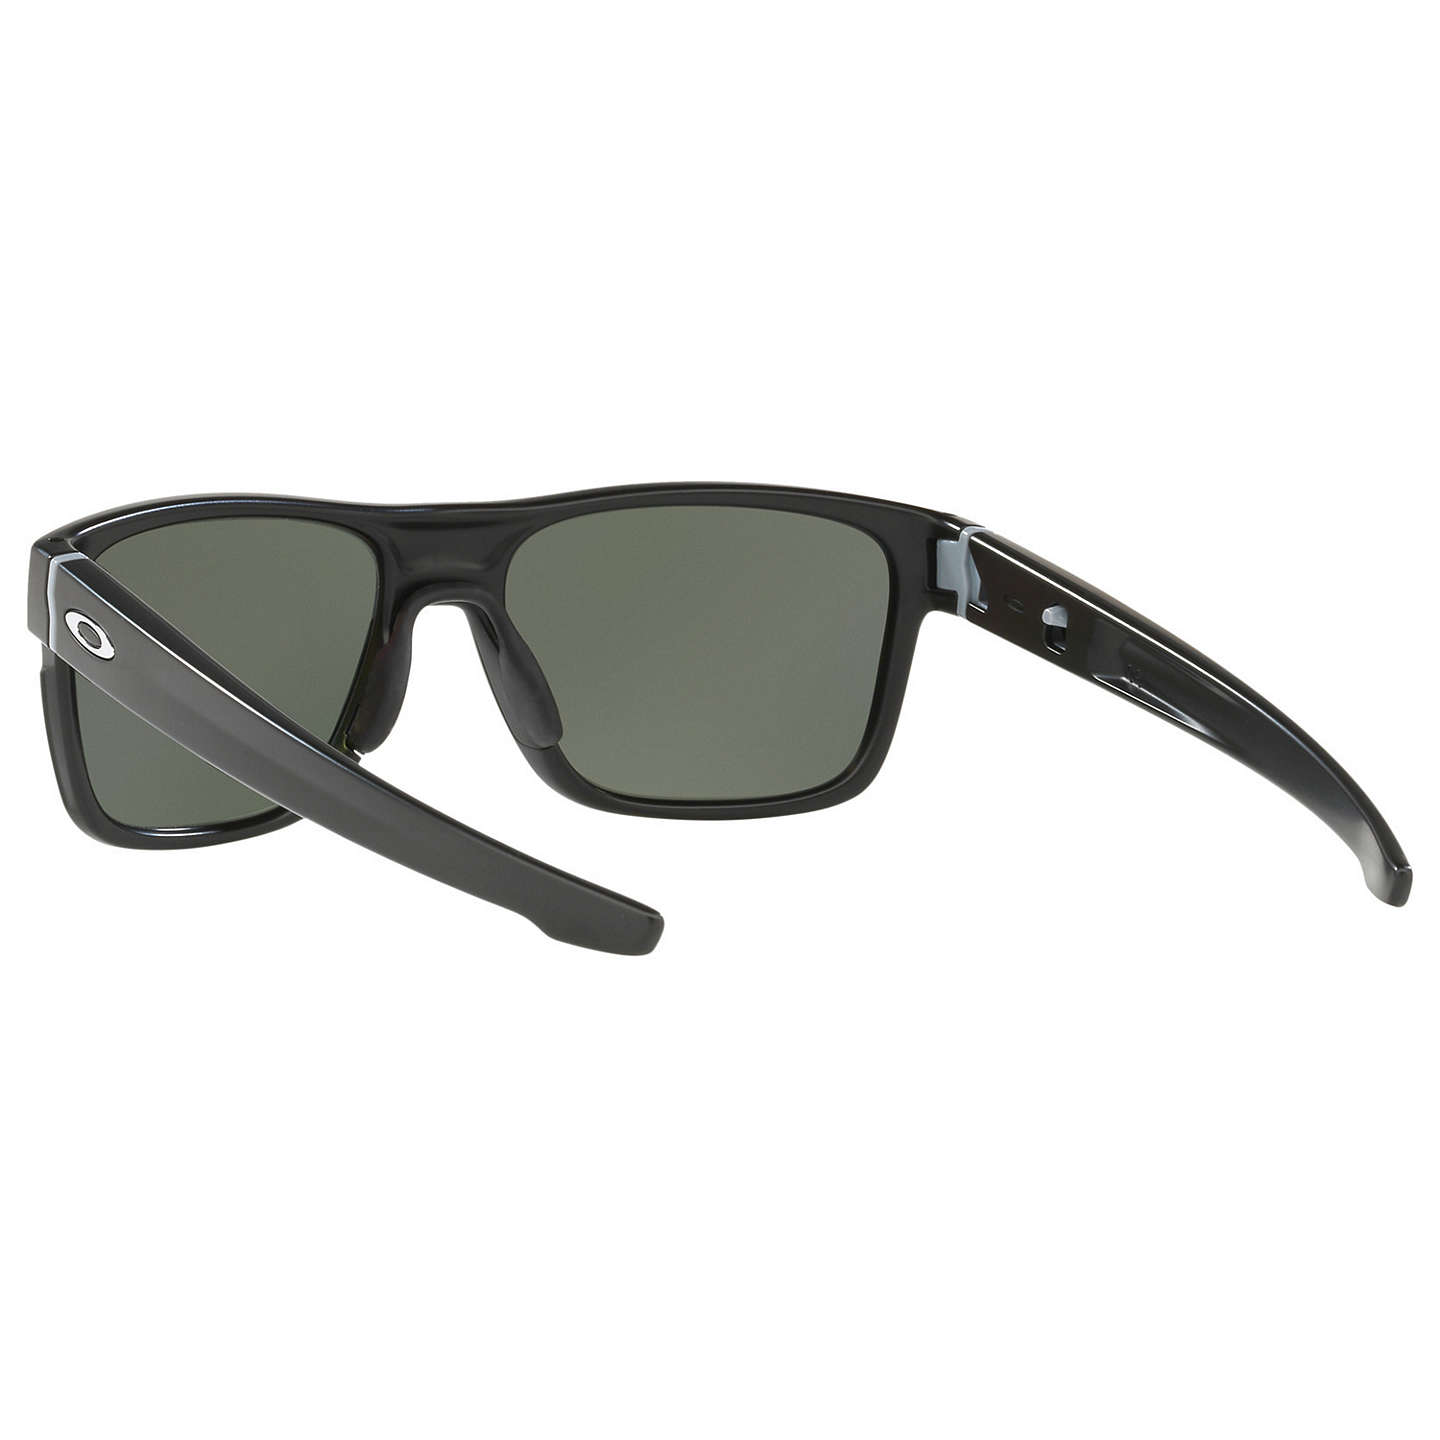 BuyOakley OO9361 Crossrange Prizm Polarised Square Sunglasses, Matte Black/Mirror Beige Online at johnlewis.com